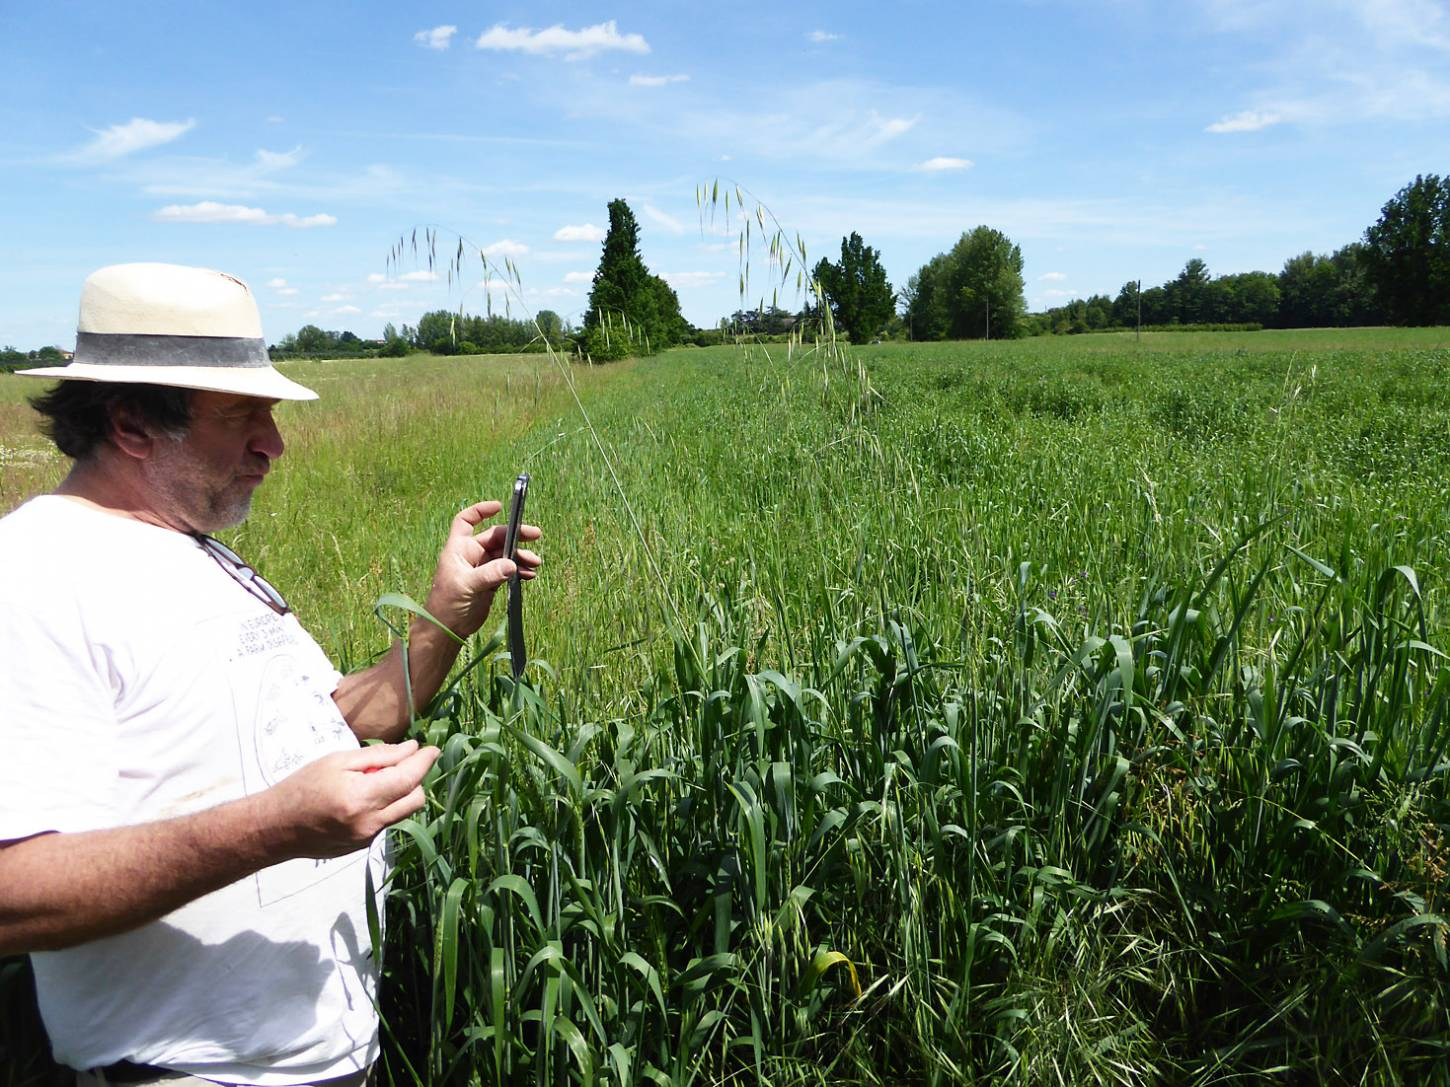 visiting heritage wheat farmer <a href='https://www.facebook.com/paysanbio.semencespaysannes' target='_blank'>Phillipe Guichard</a>, France, May '17 - 2:44pm&nbsp;15<sup>th</sup>&nbsp;May.&nbsp;'17  <a href='http://maps.google.com/?t=h&q=44.419700,0.607464&z=18&output=embed' target=_blank><img src='http://www.brockwell-bake.org.uk/img/marker.png' style='border:none;vertical-align:top' height=16px></a>